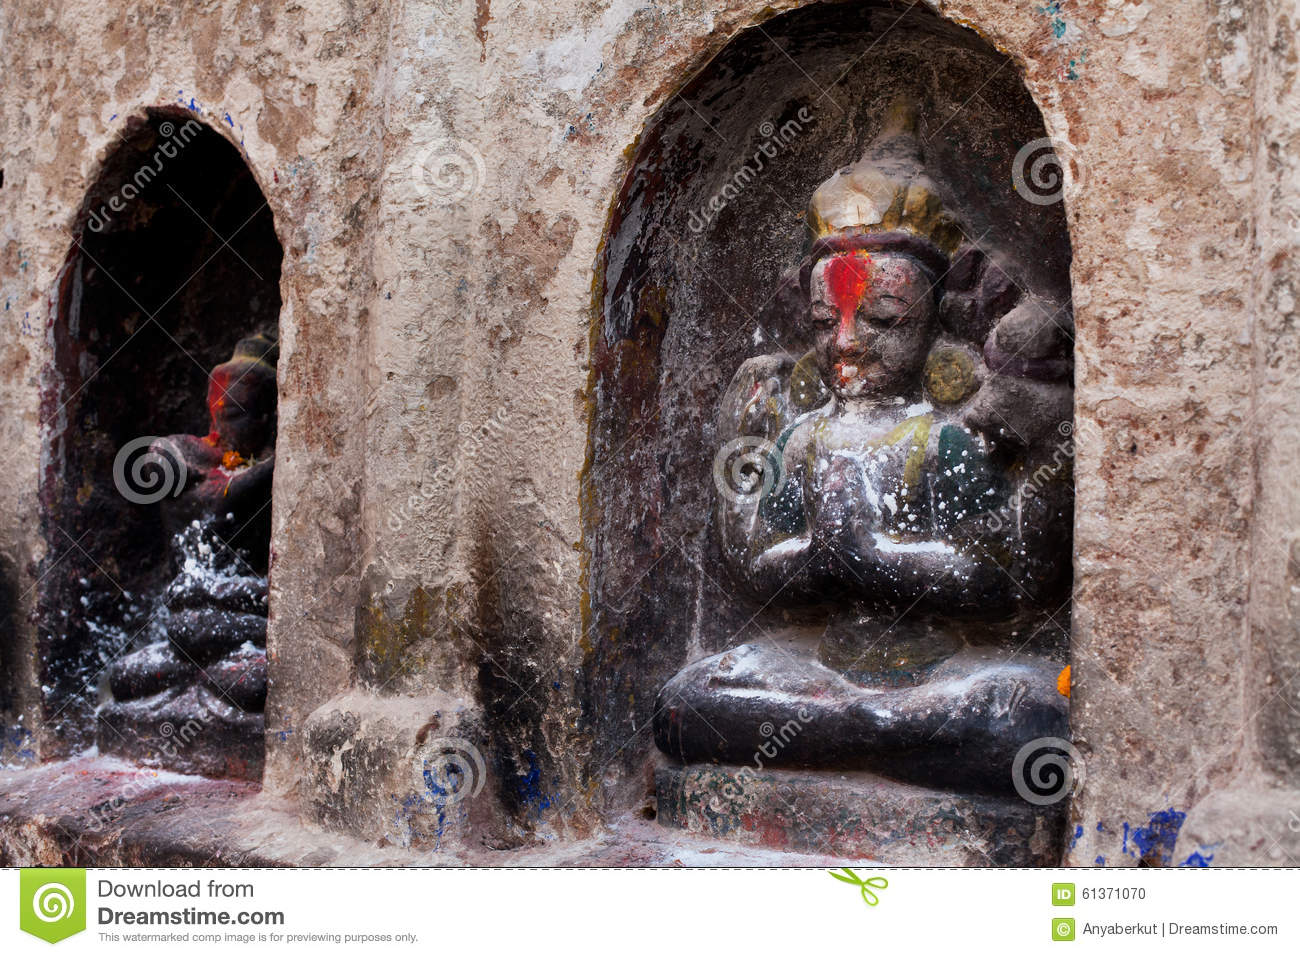 Culture and religion of Nepal 23